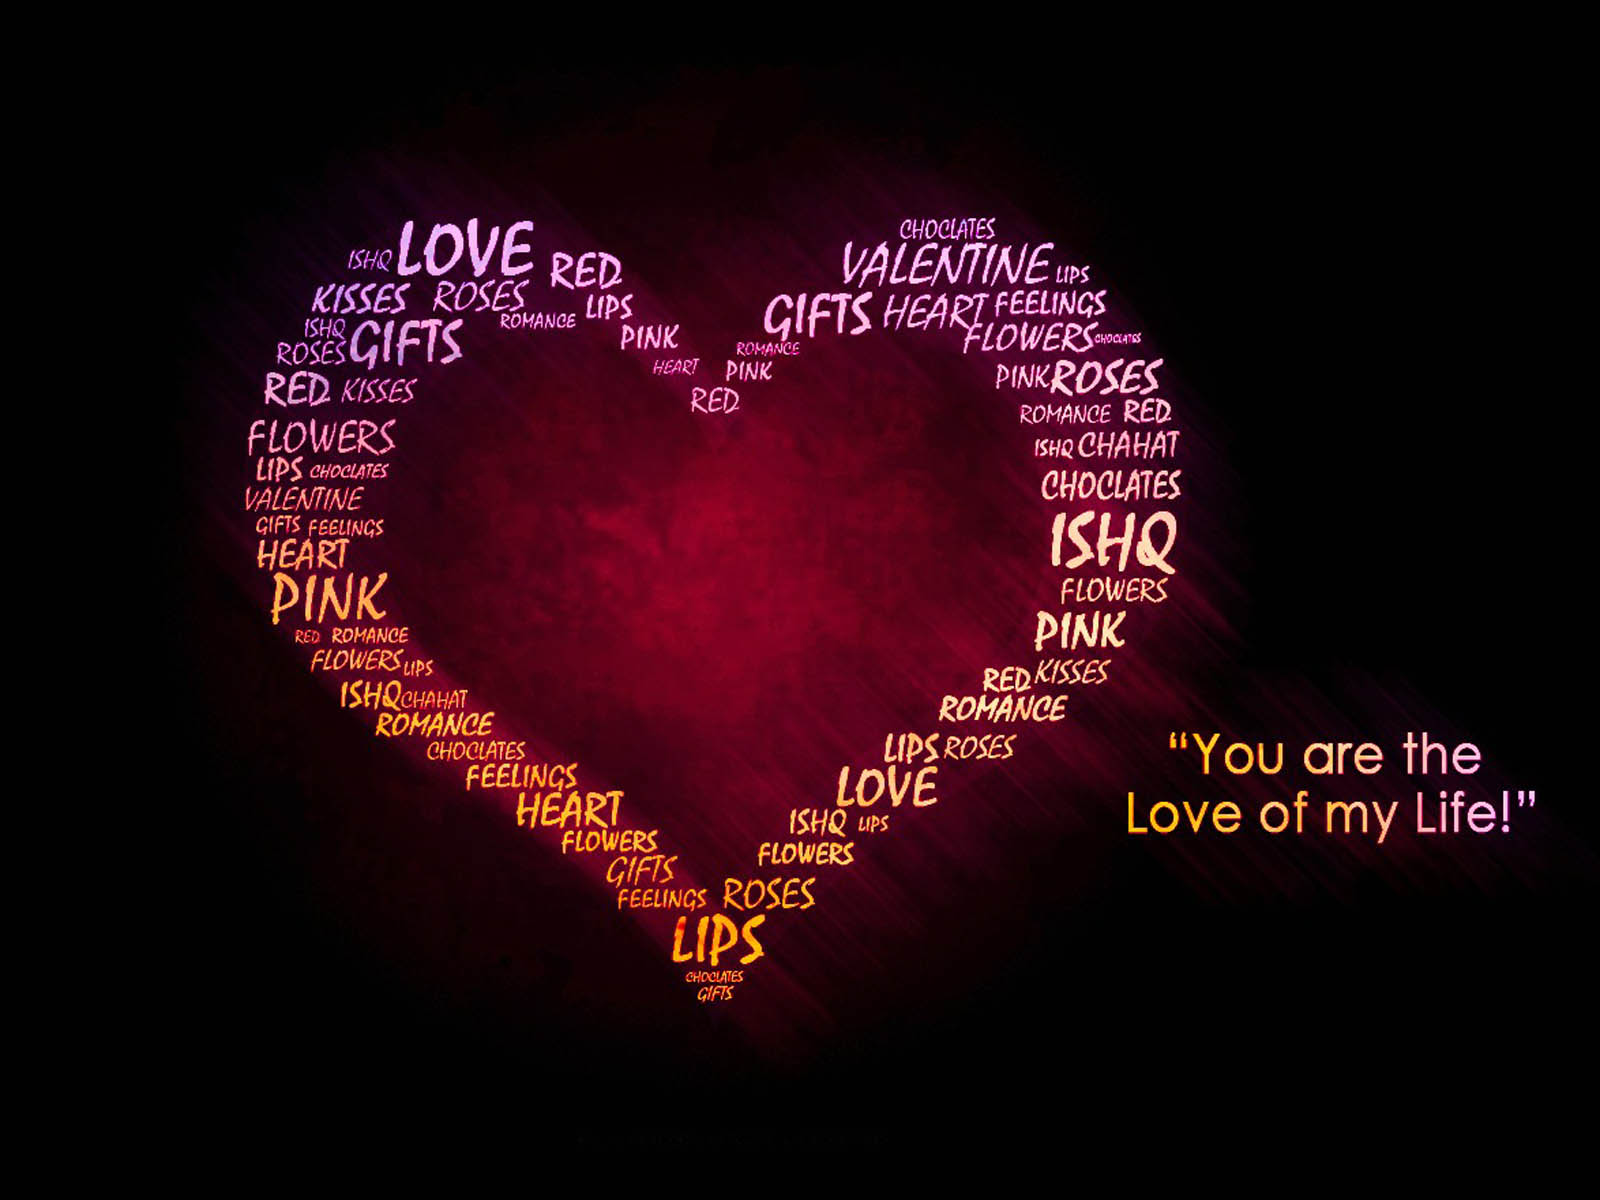 Love Desktop Wallpaper In Hd : wallpapers: Love Quotes Desktop Wallpapers